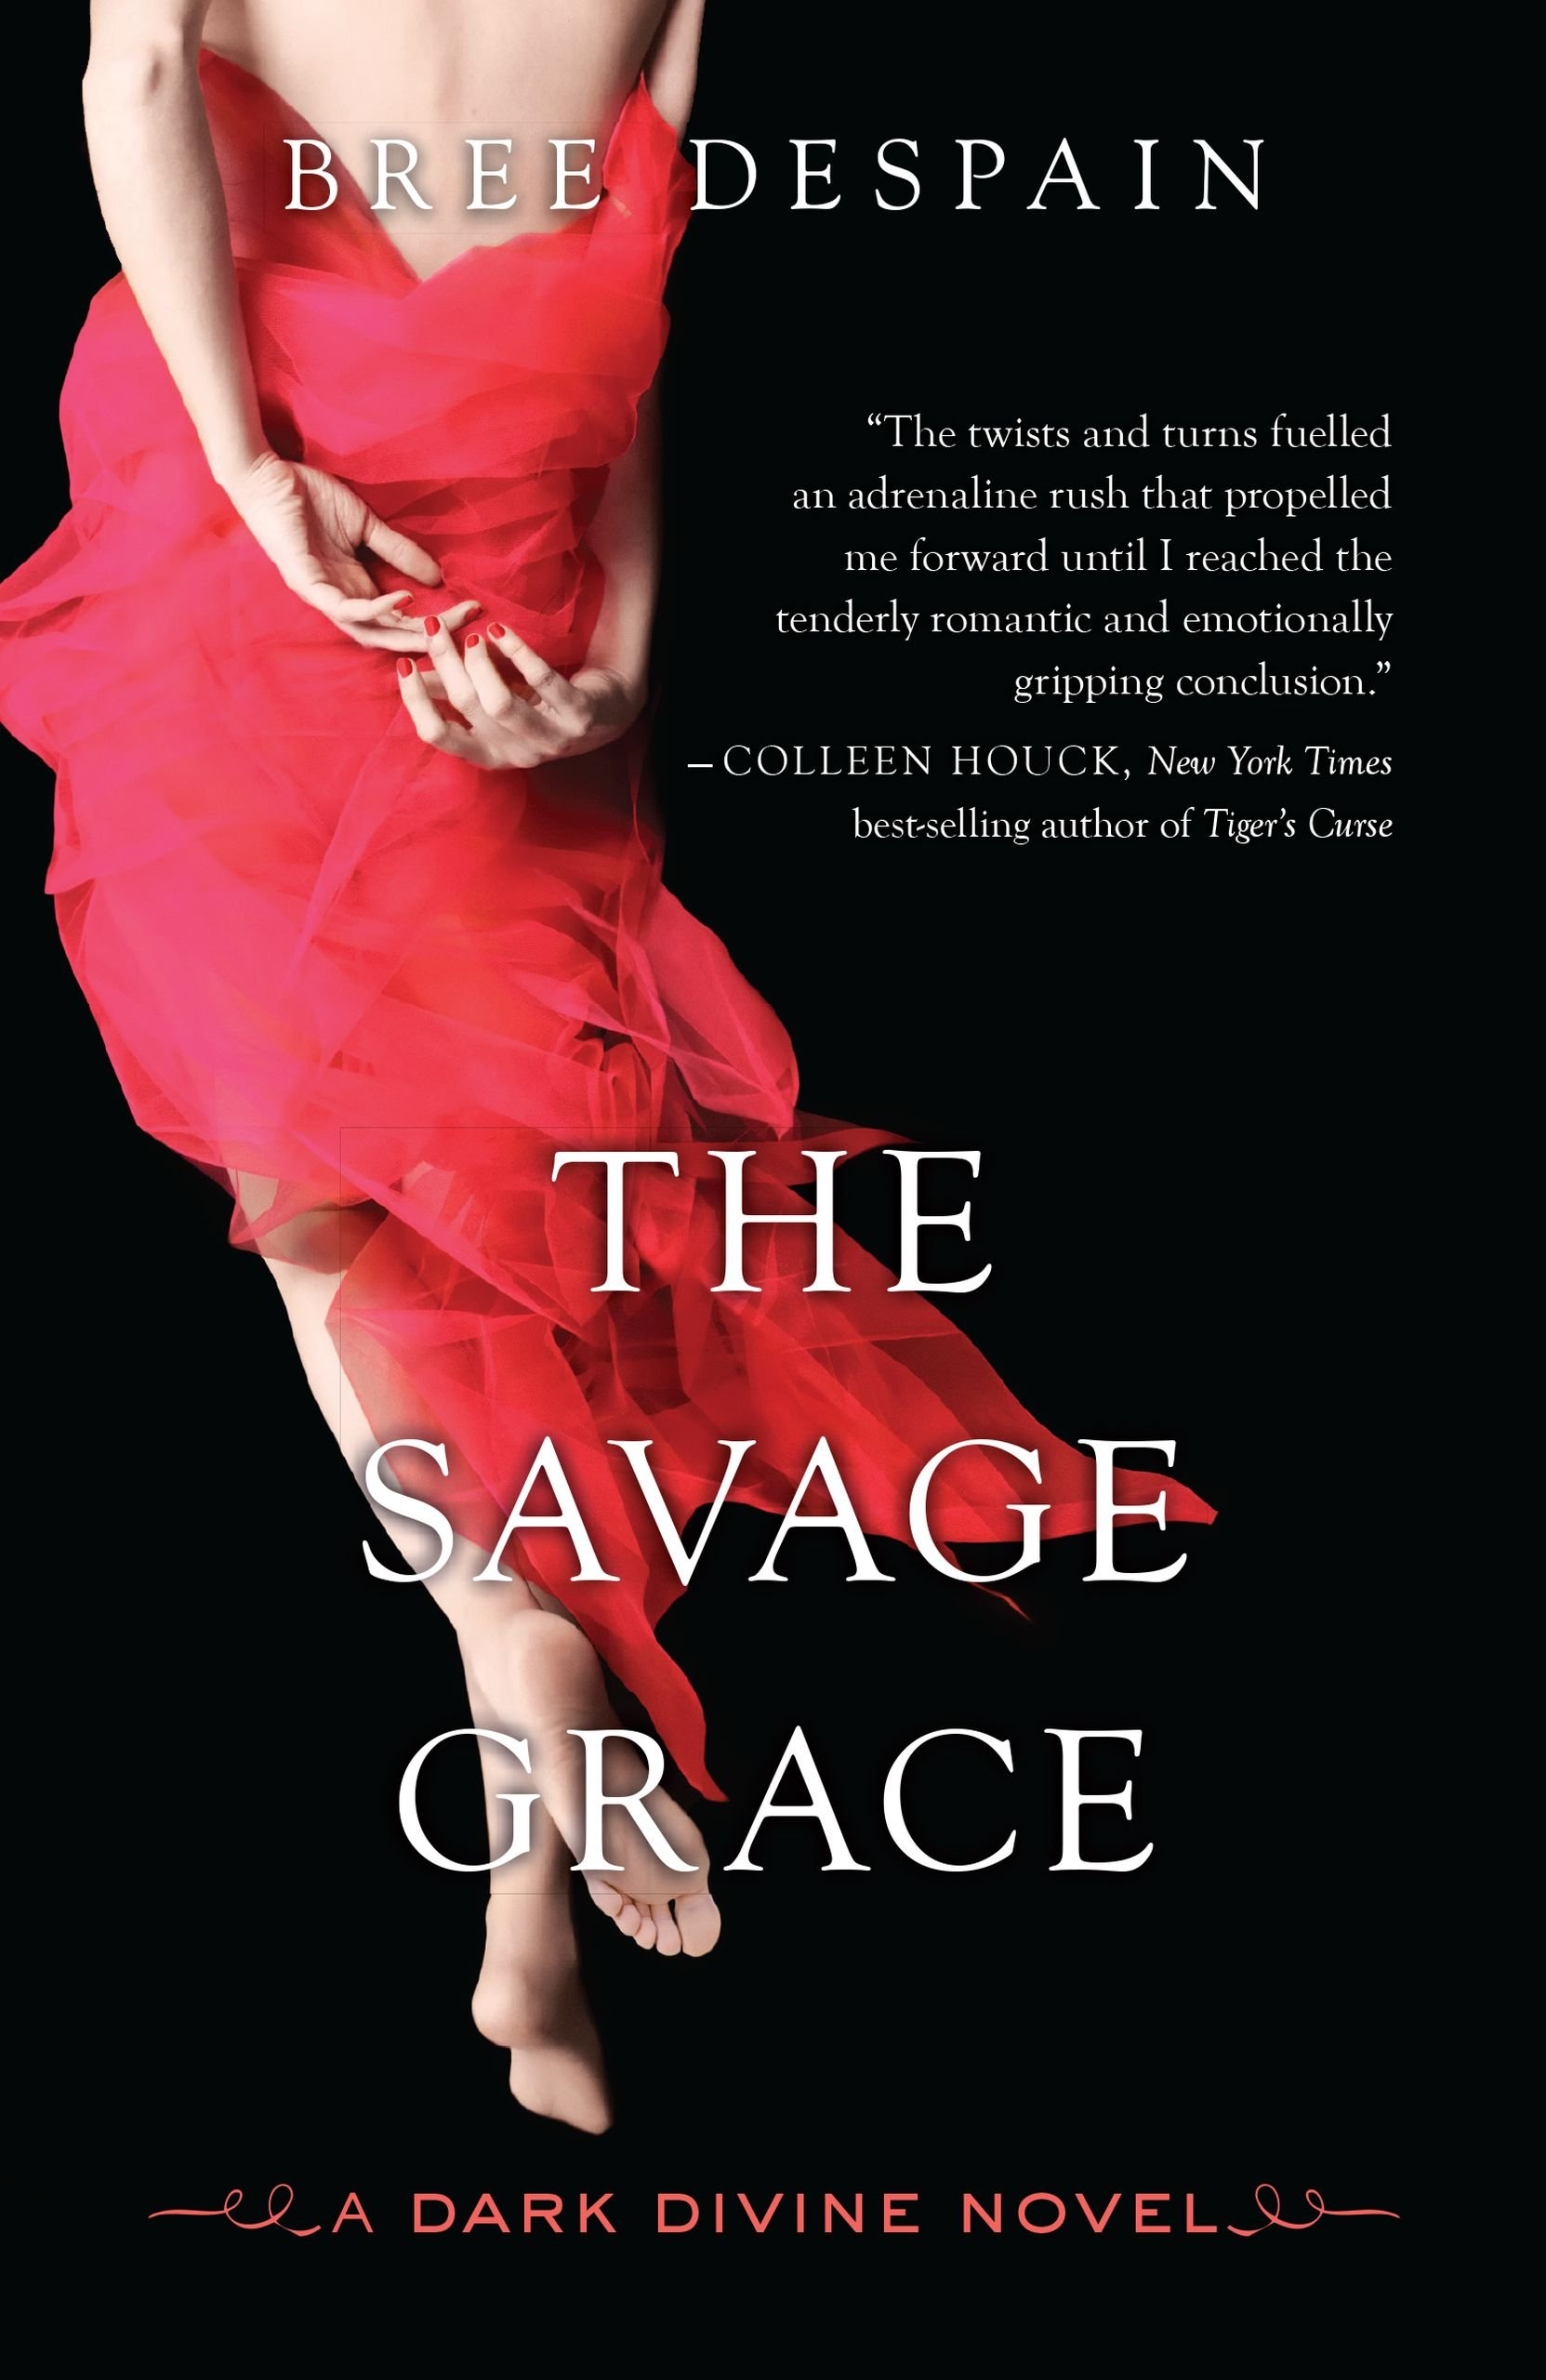 The Savage Grace: A Dark Divine Novel: Amazon.es: Bree Despain: Libros en idiomas extranjeros